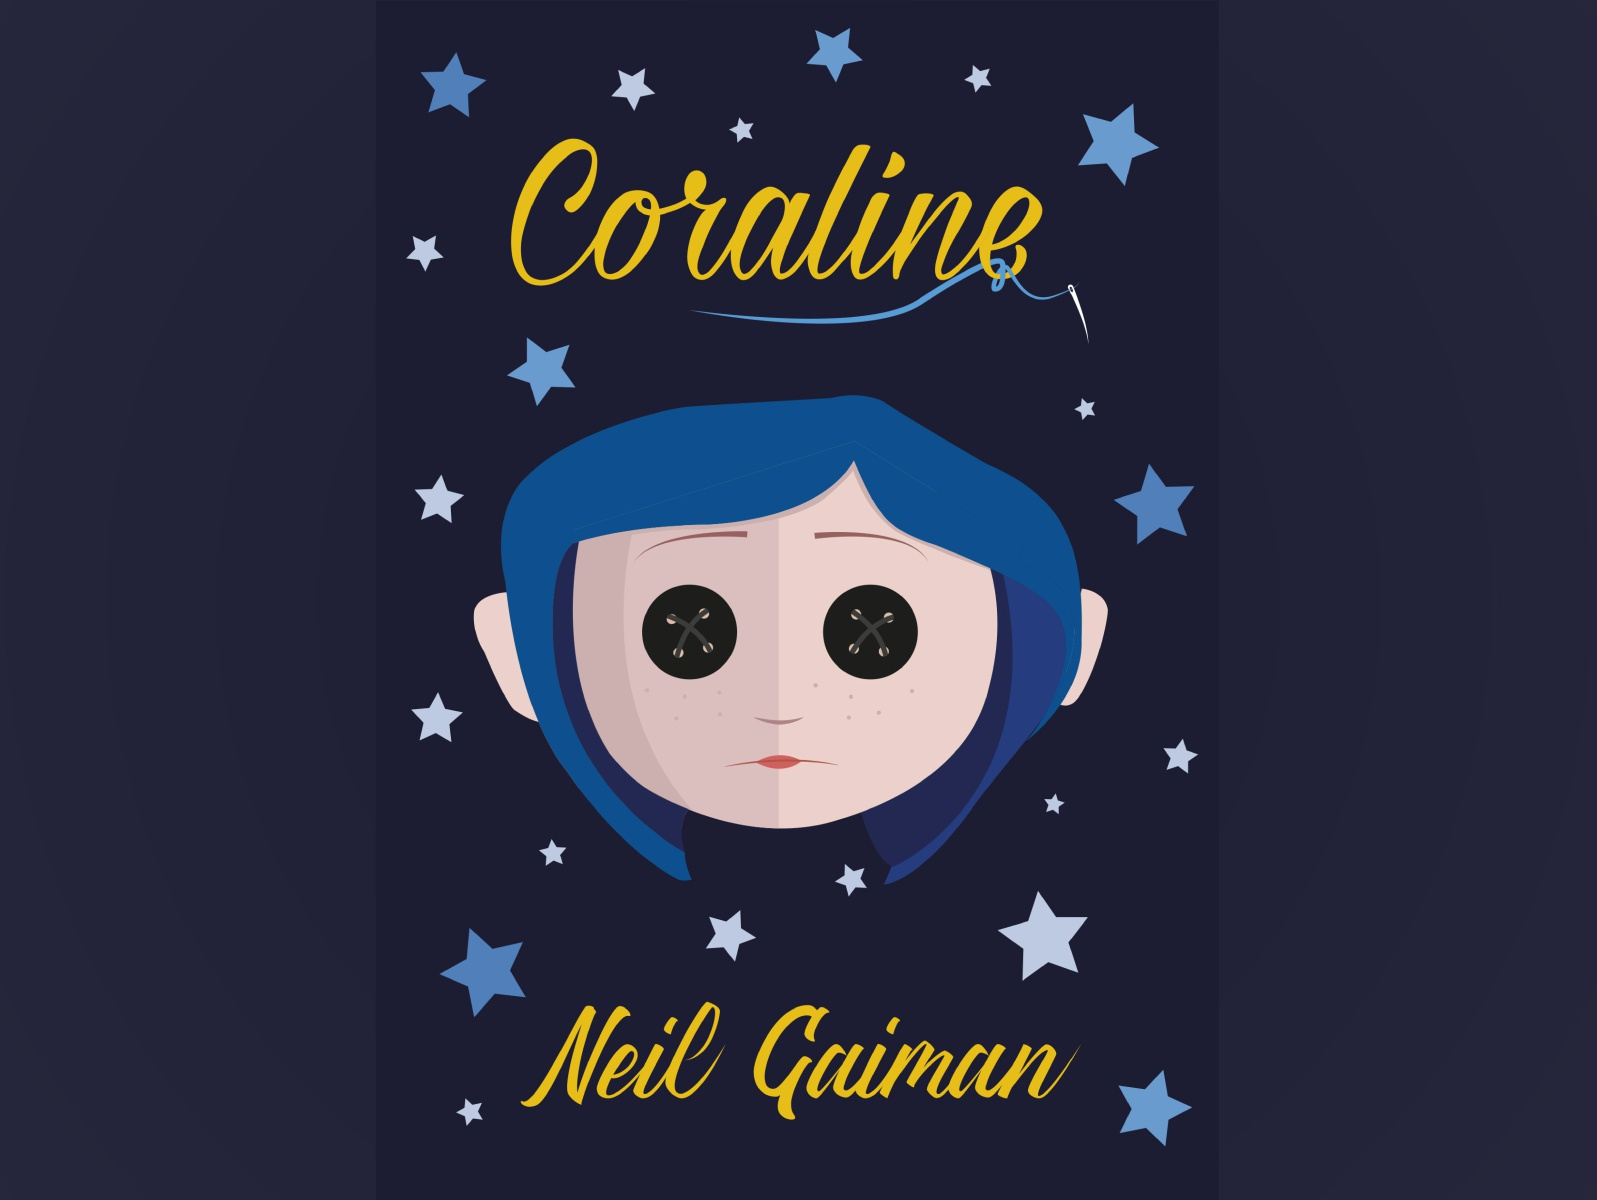 Coraline Book Cover By Julia On Dribbble